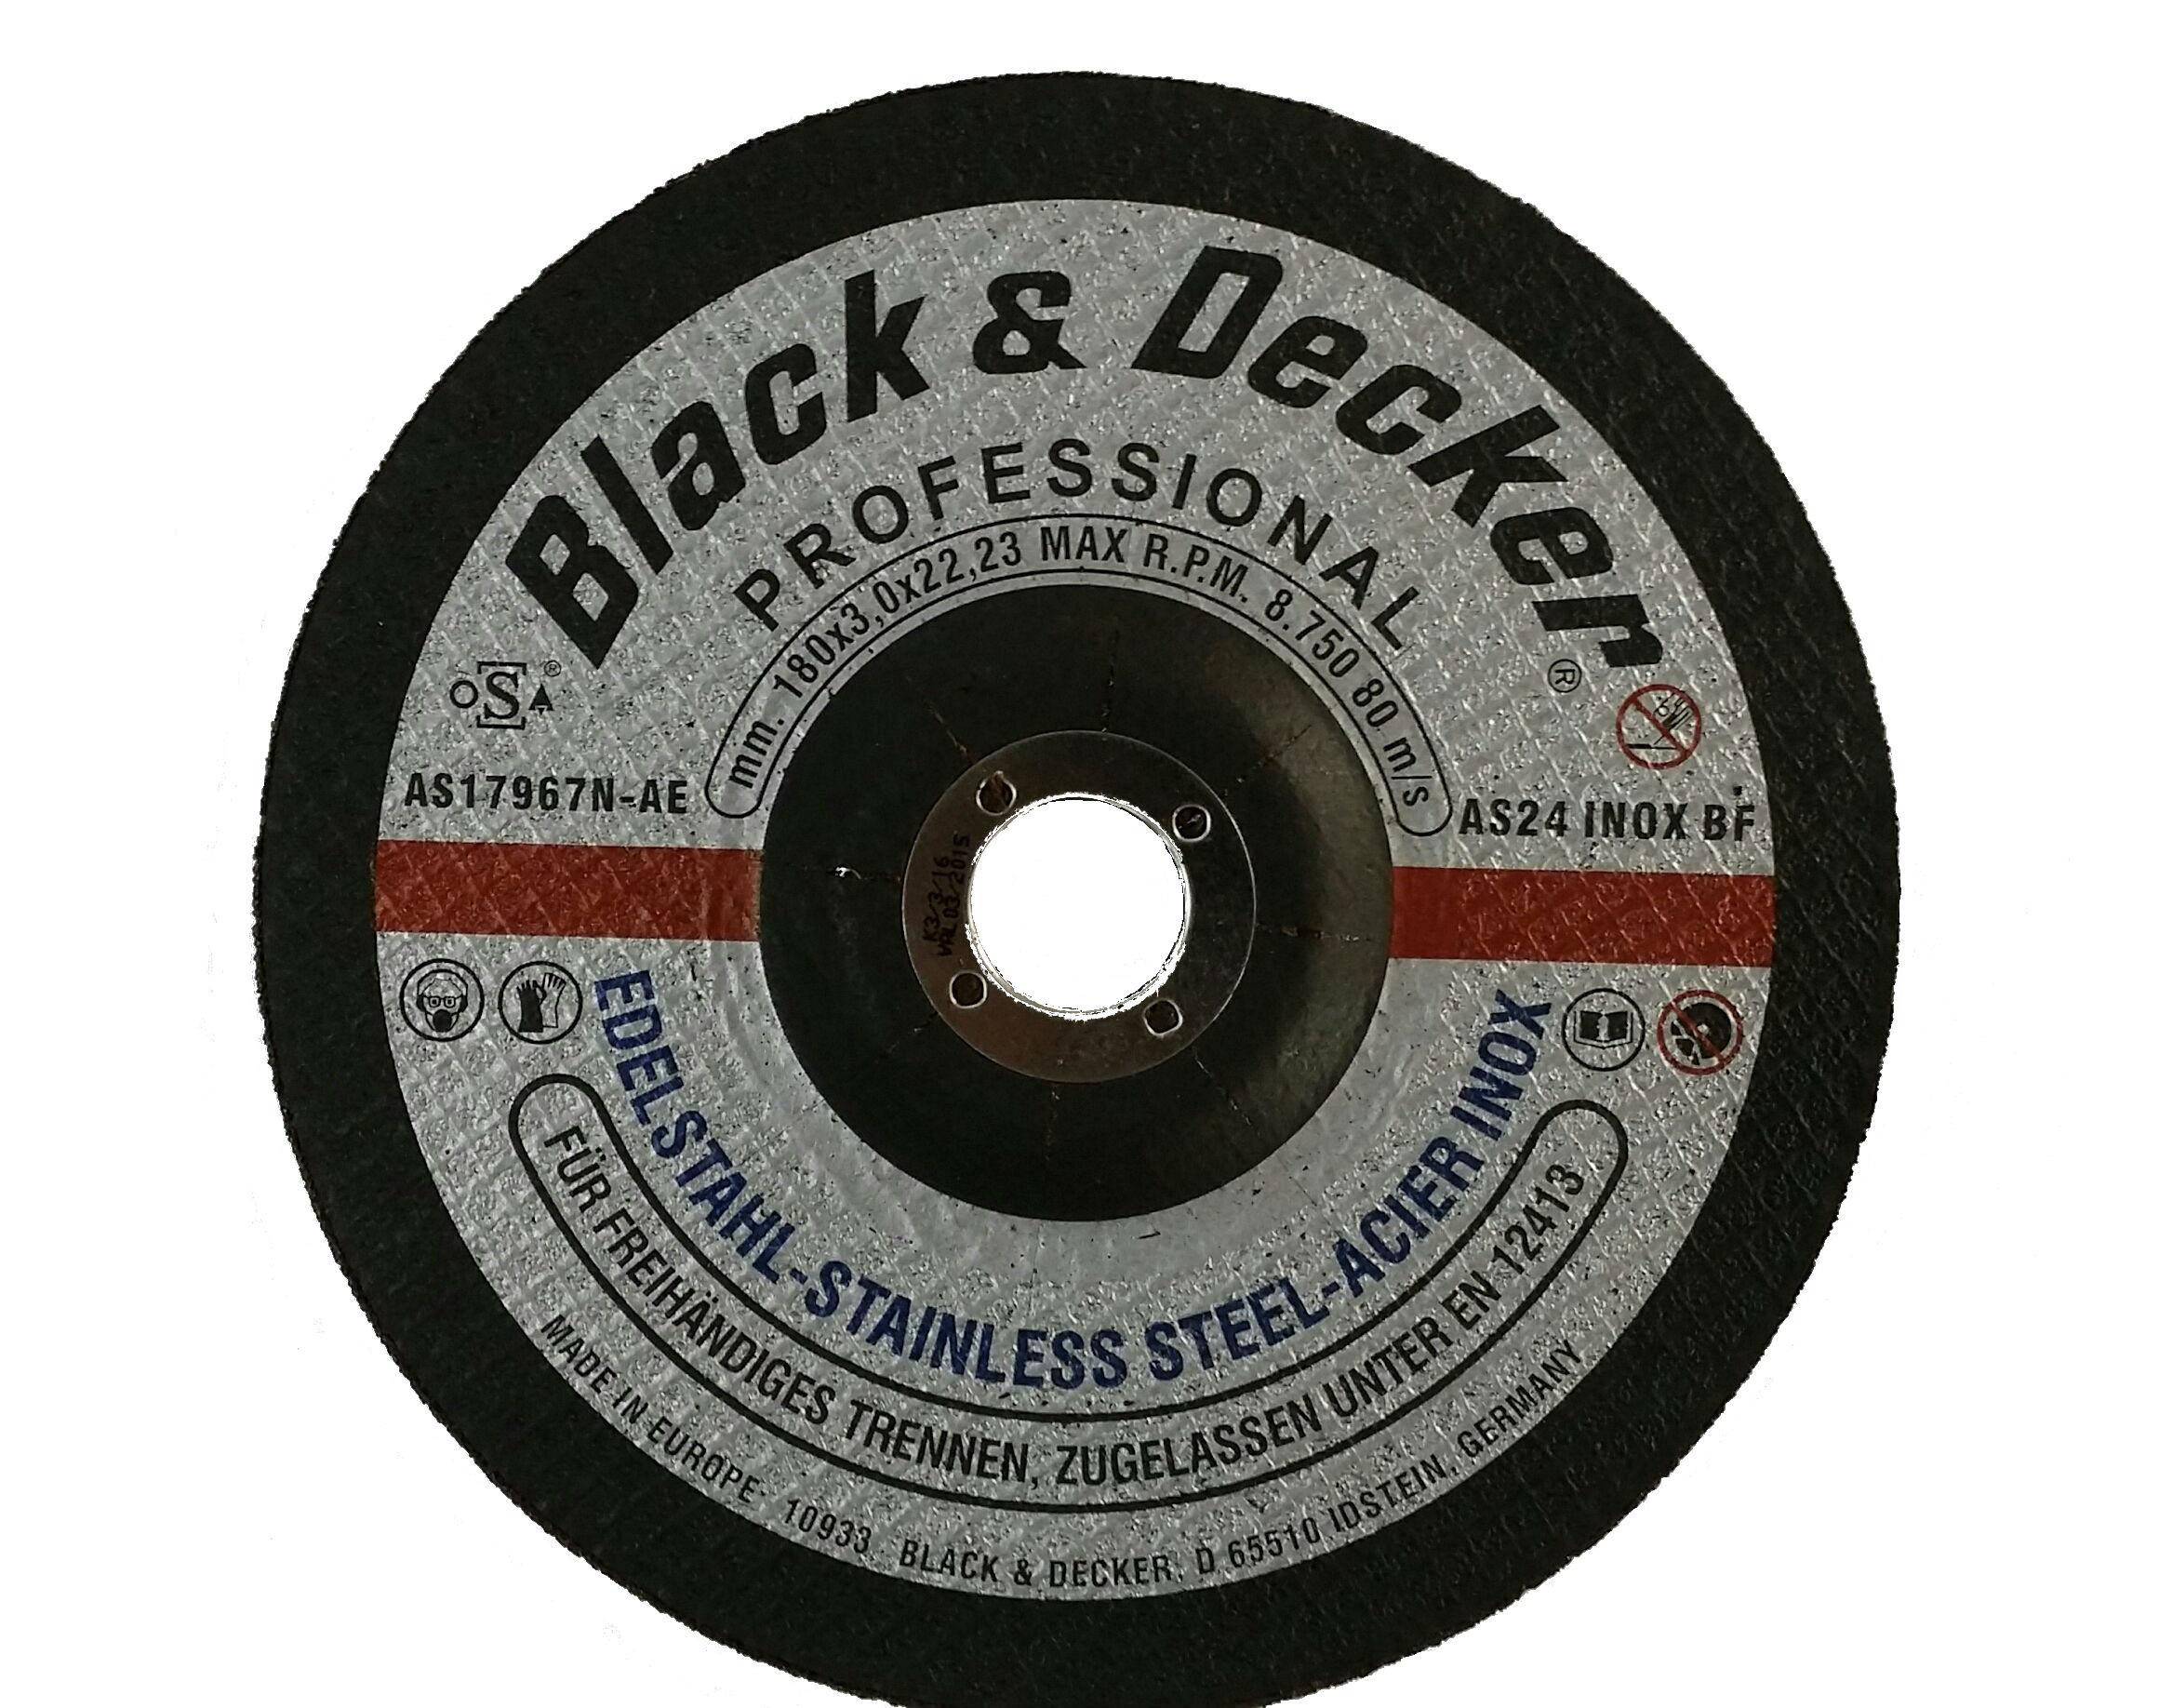 Black & Decker AS17987N-AE - 9-inch S.Steel Cutting Disc